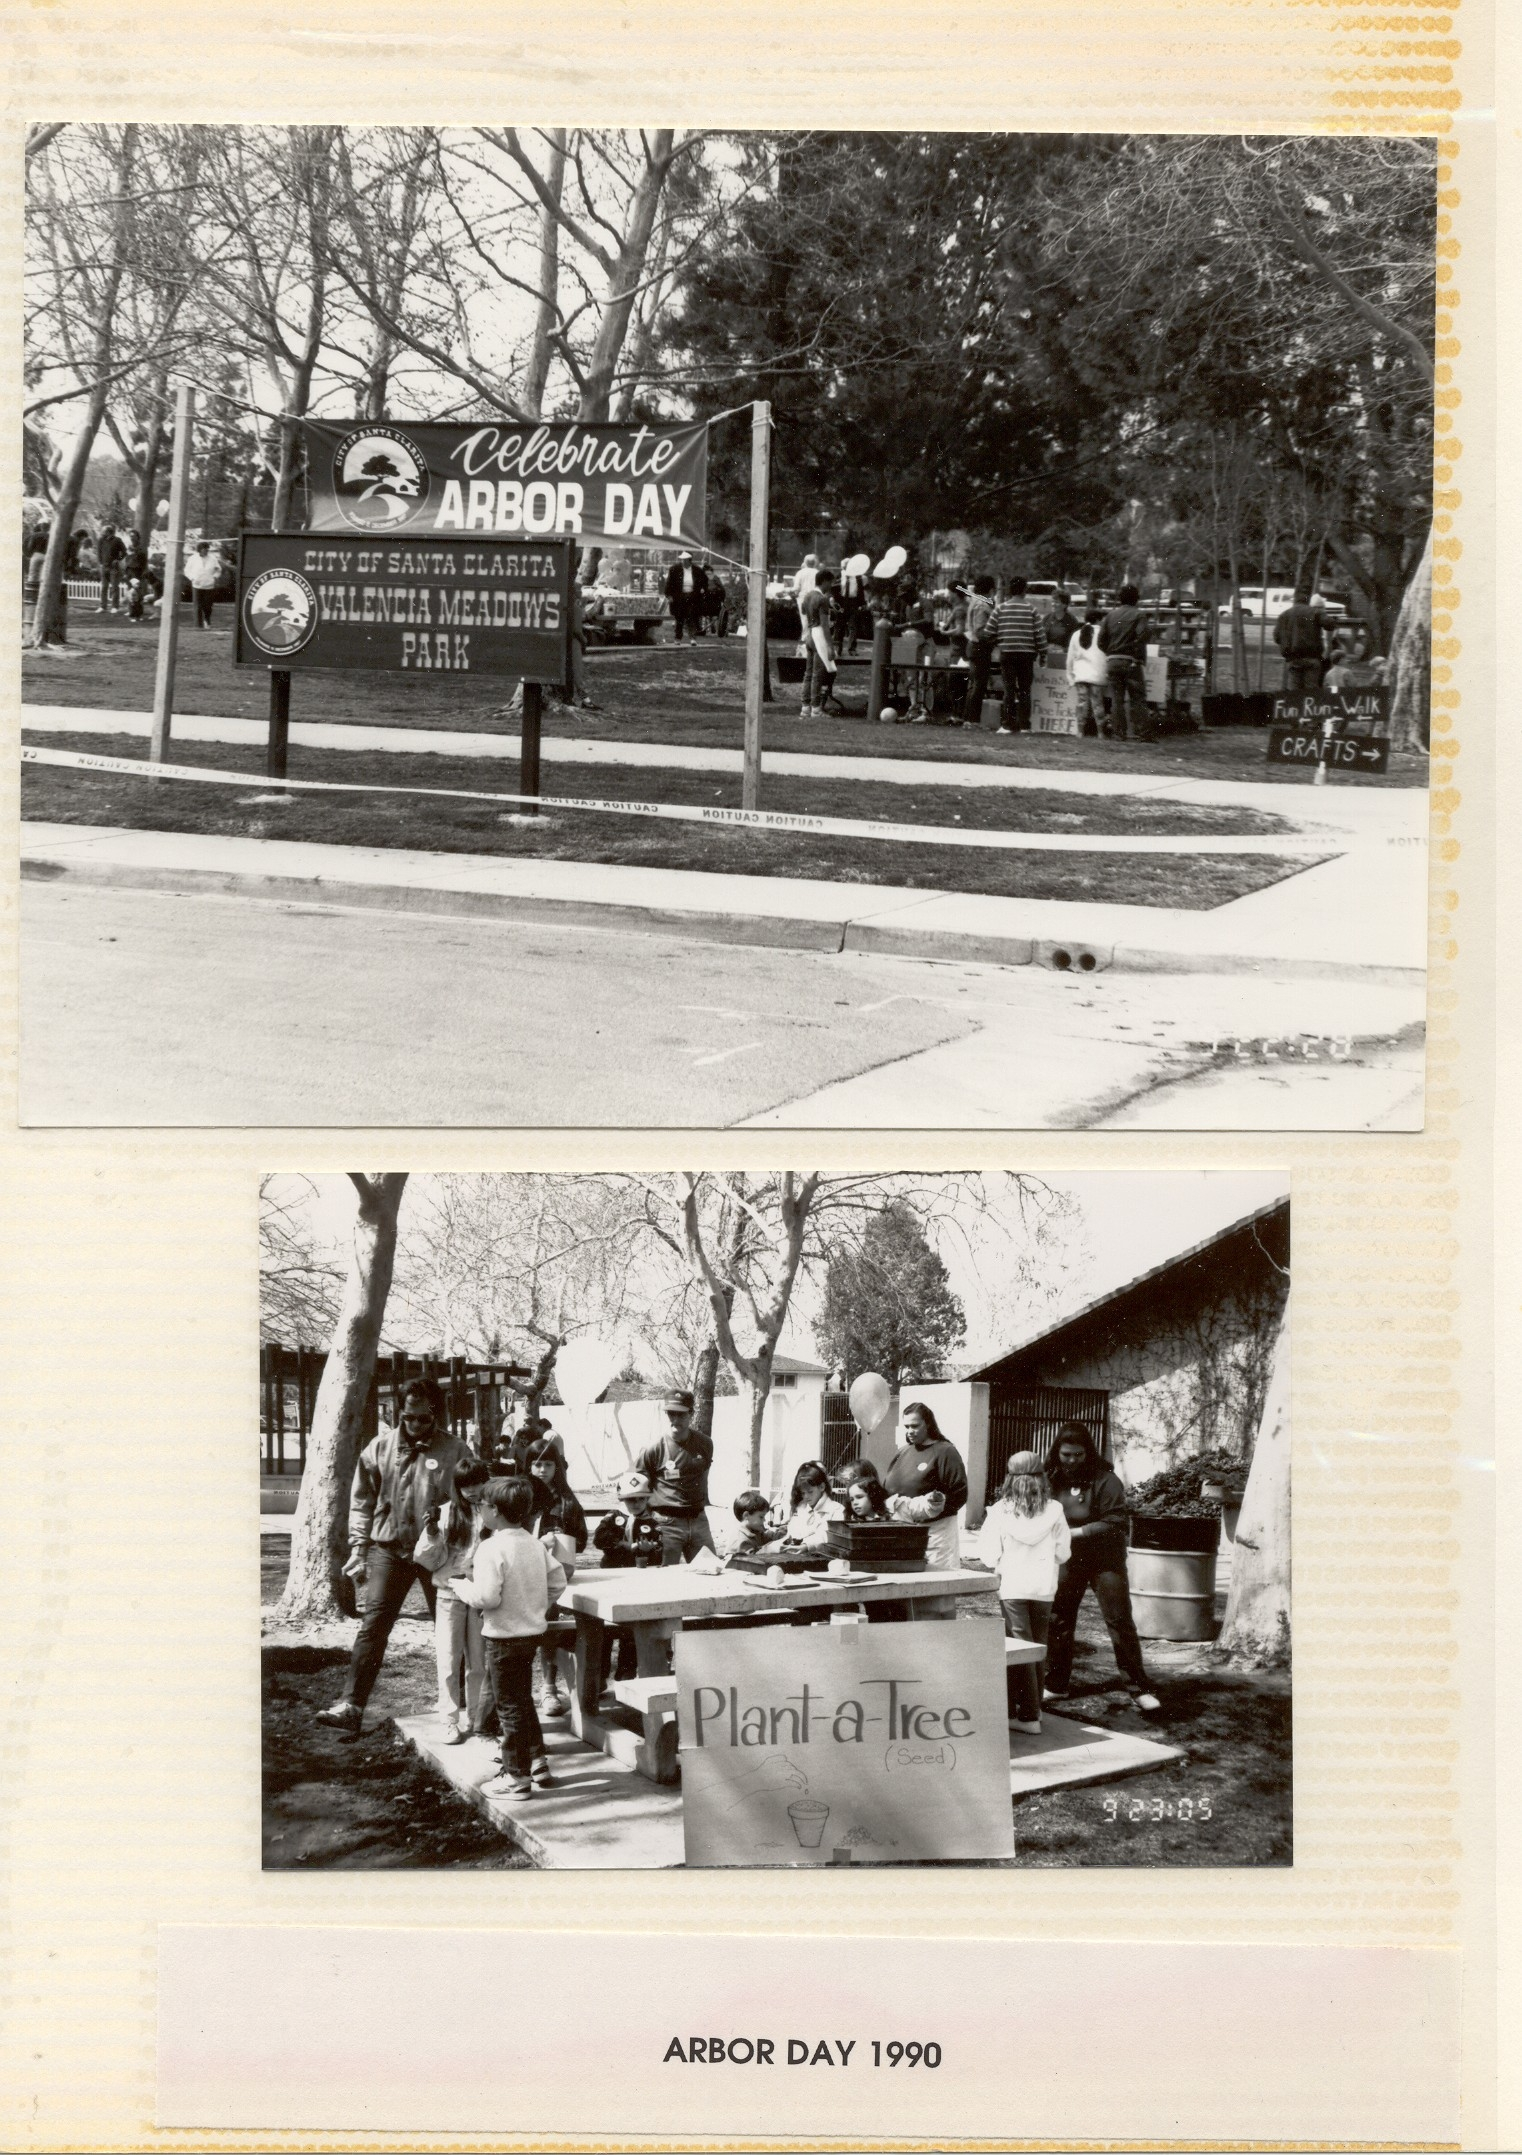 Photo's preserved from the City of Santa Clarita's first Arbor Day event in 1990.